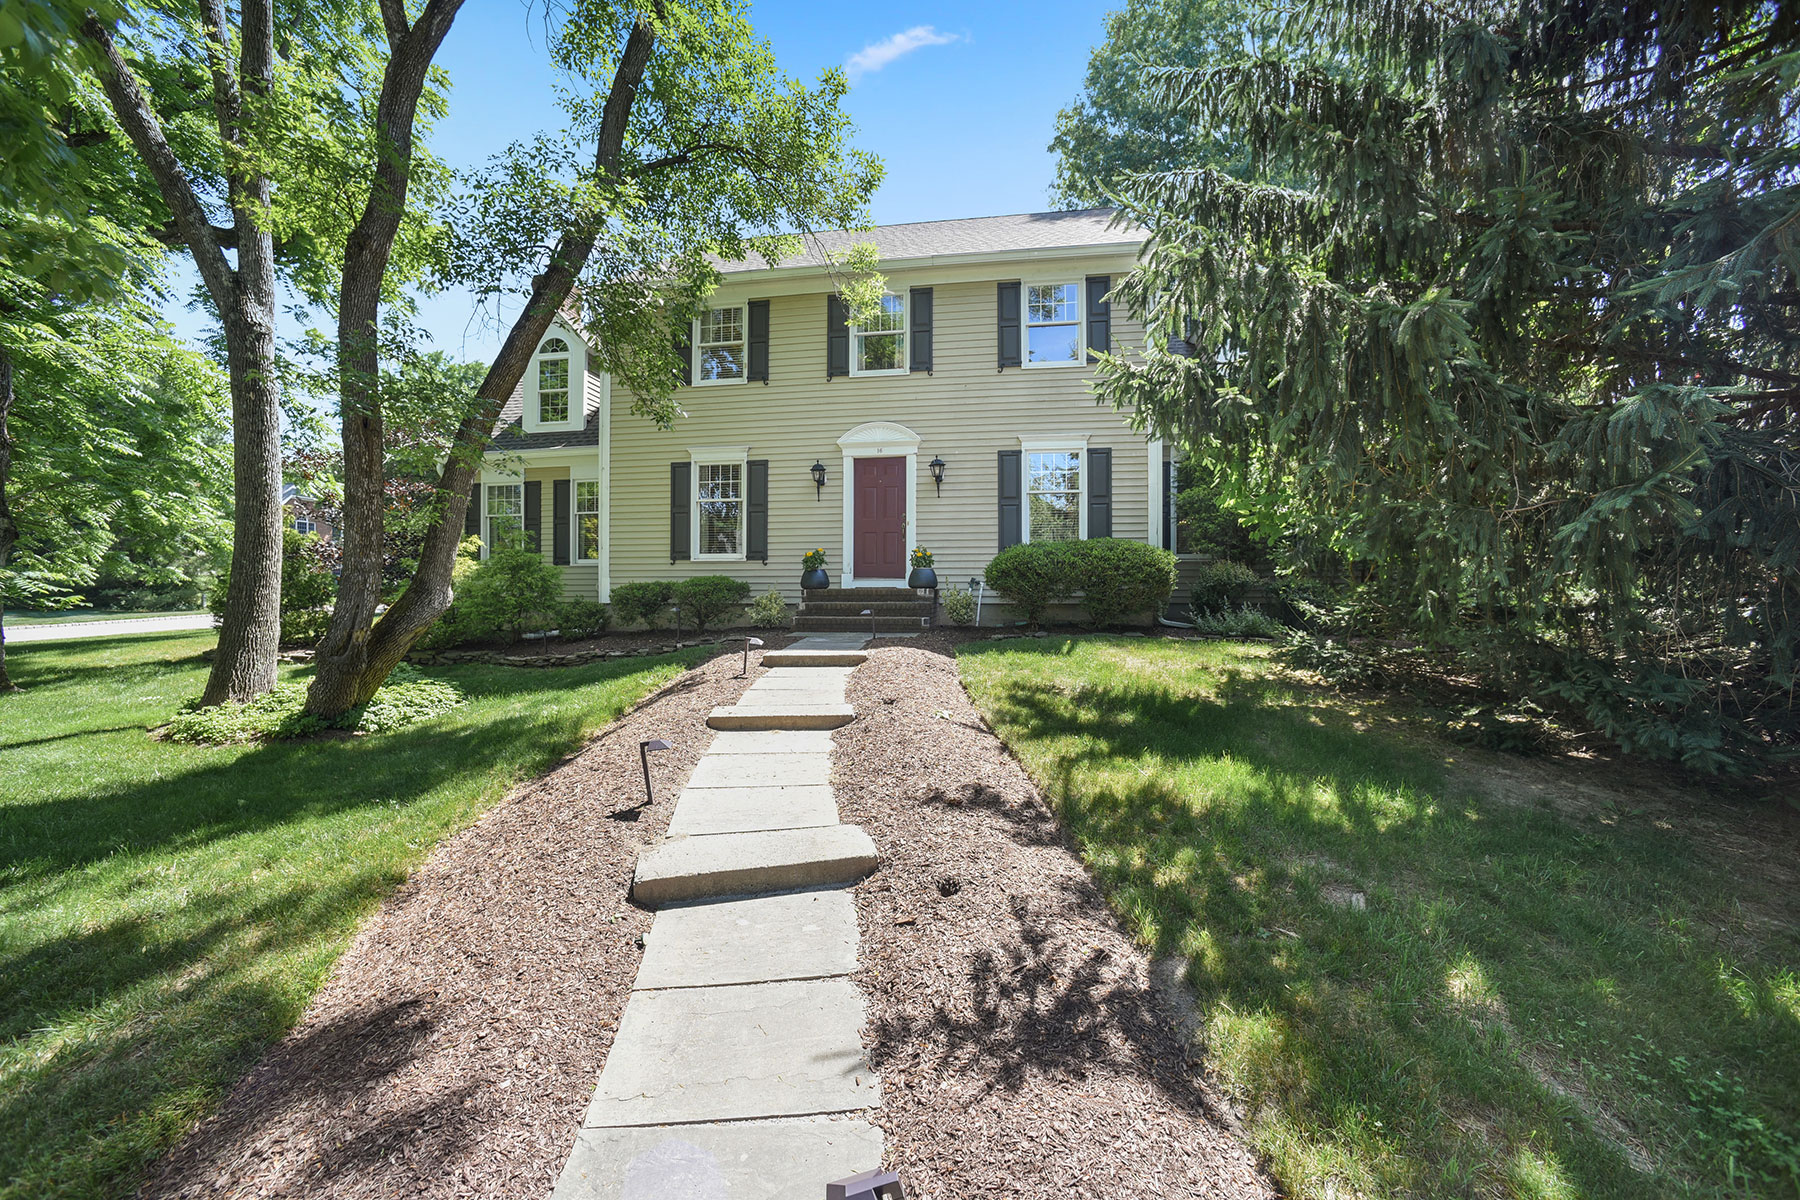 Single Family Homes for Active at Stately Colonial 16 Devonshire Lane Mendham, New Jersey 07945 United States